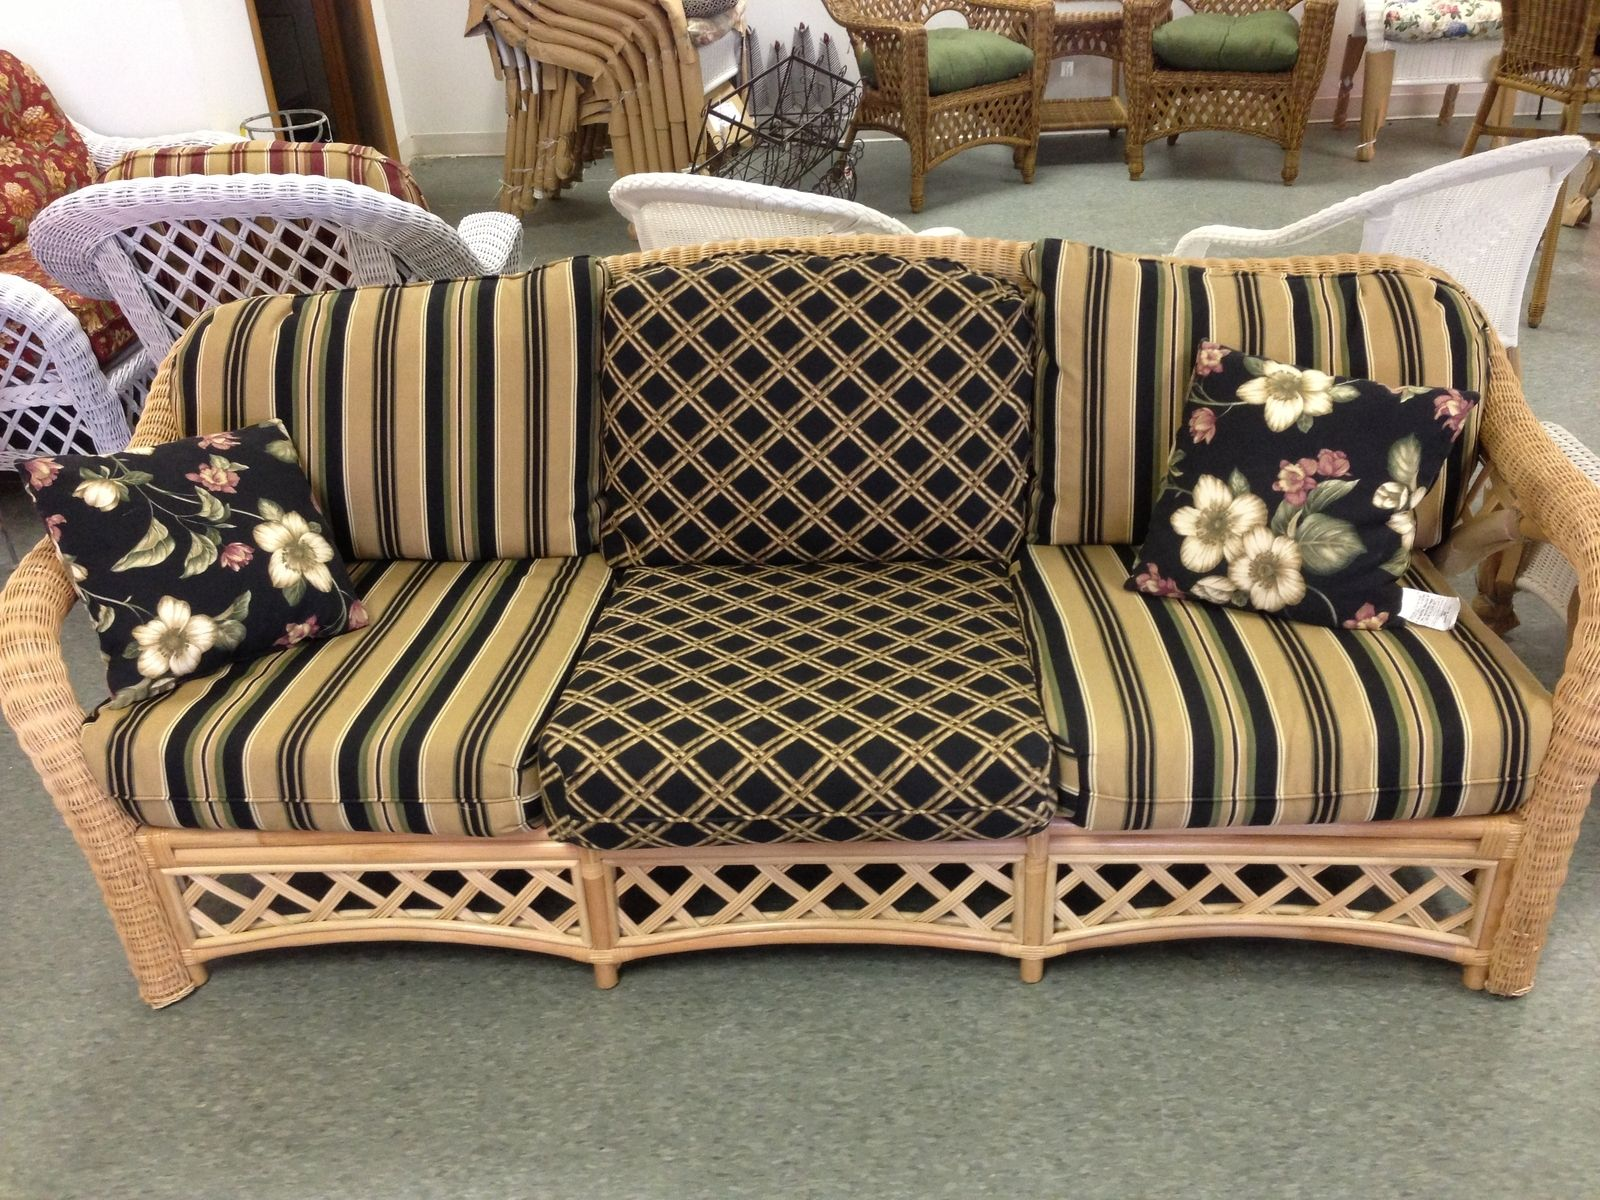 Custom Upholstered Couch Cushions By